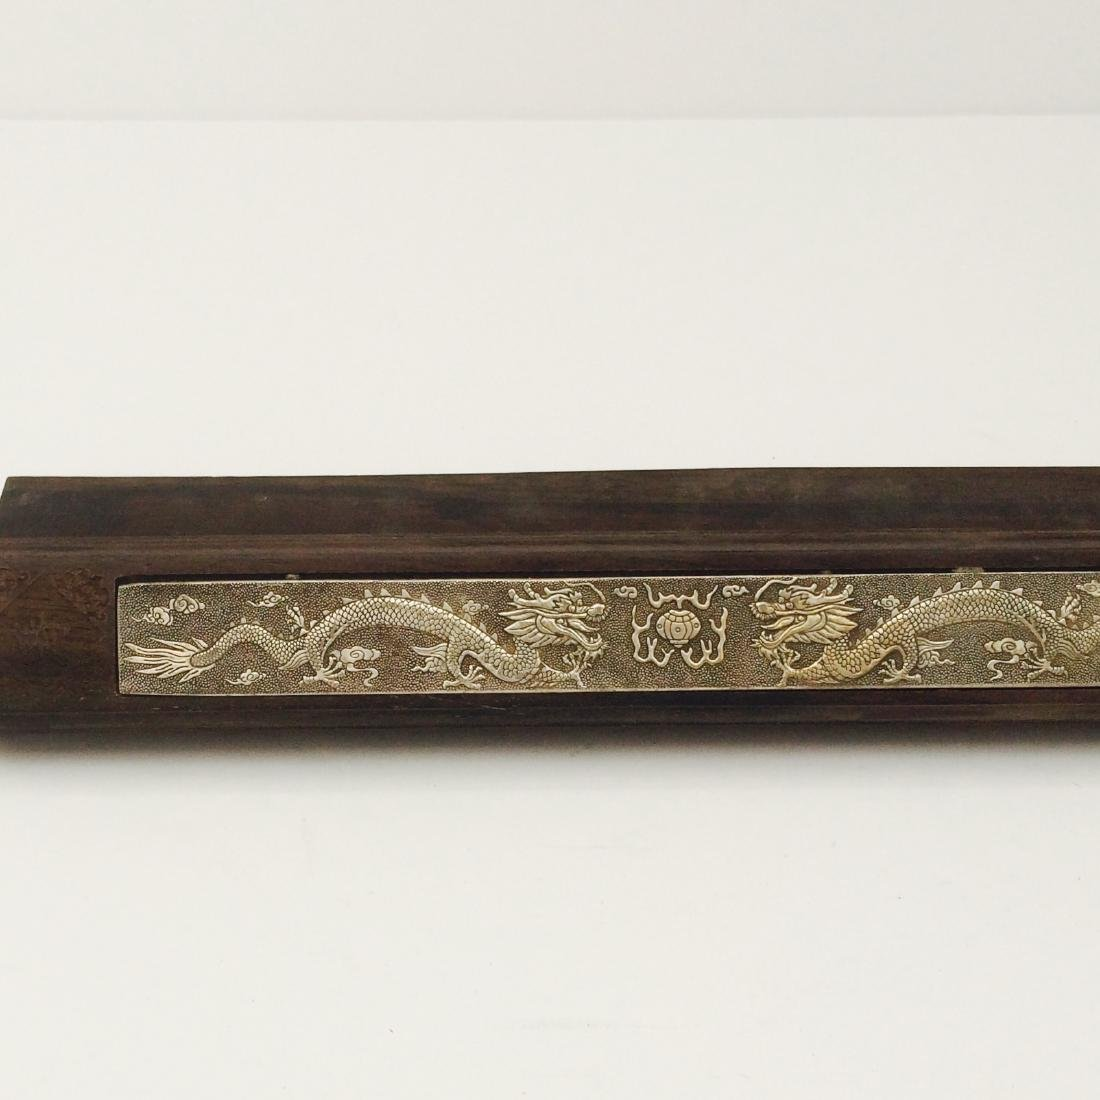 Chinese Qing Dynasty Style Paper Weights w Silver Inlay - 7